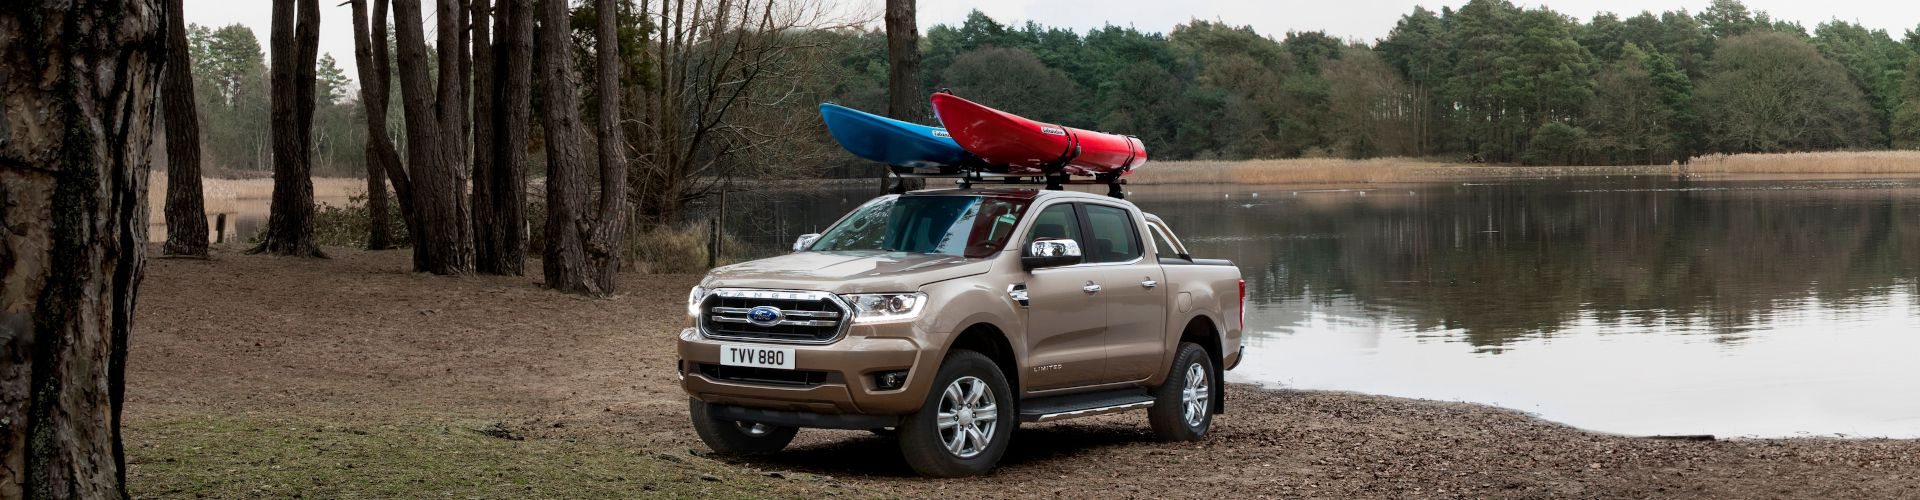 Ford Ranger Limited - Liapis Bros